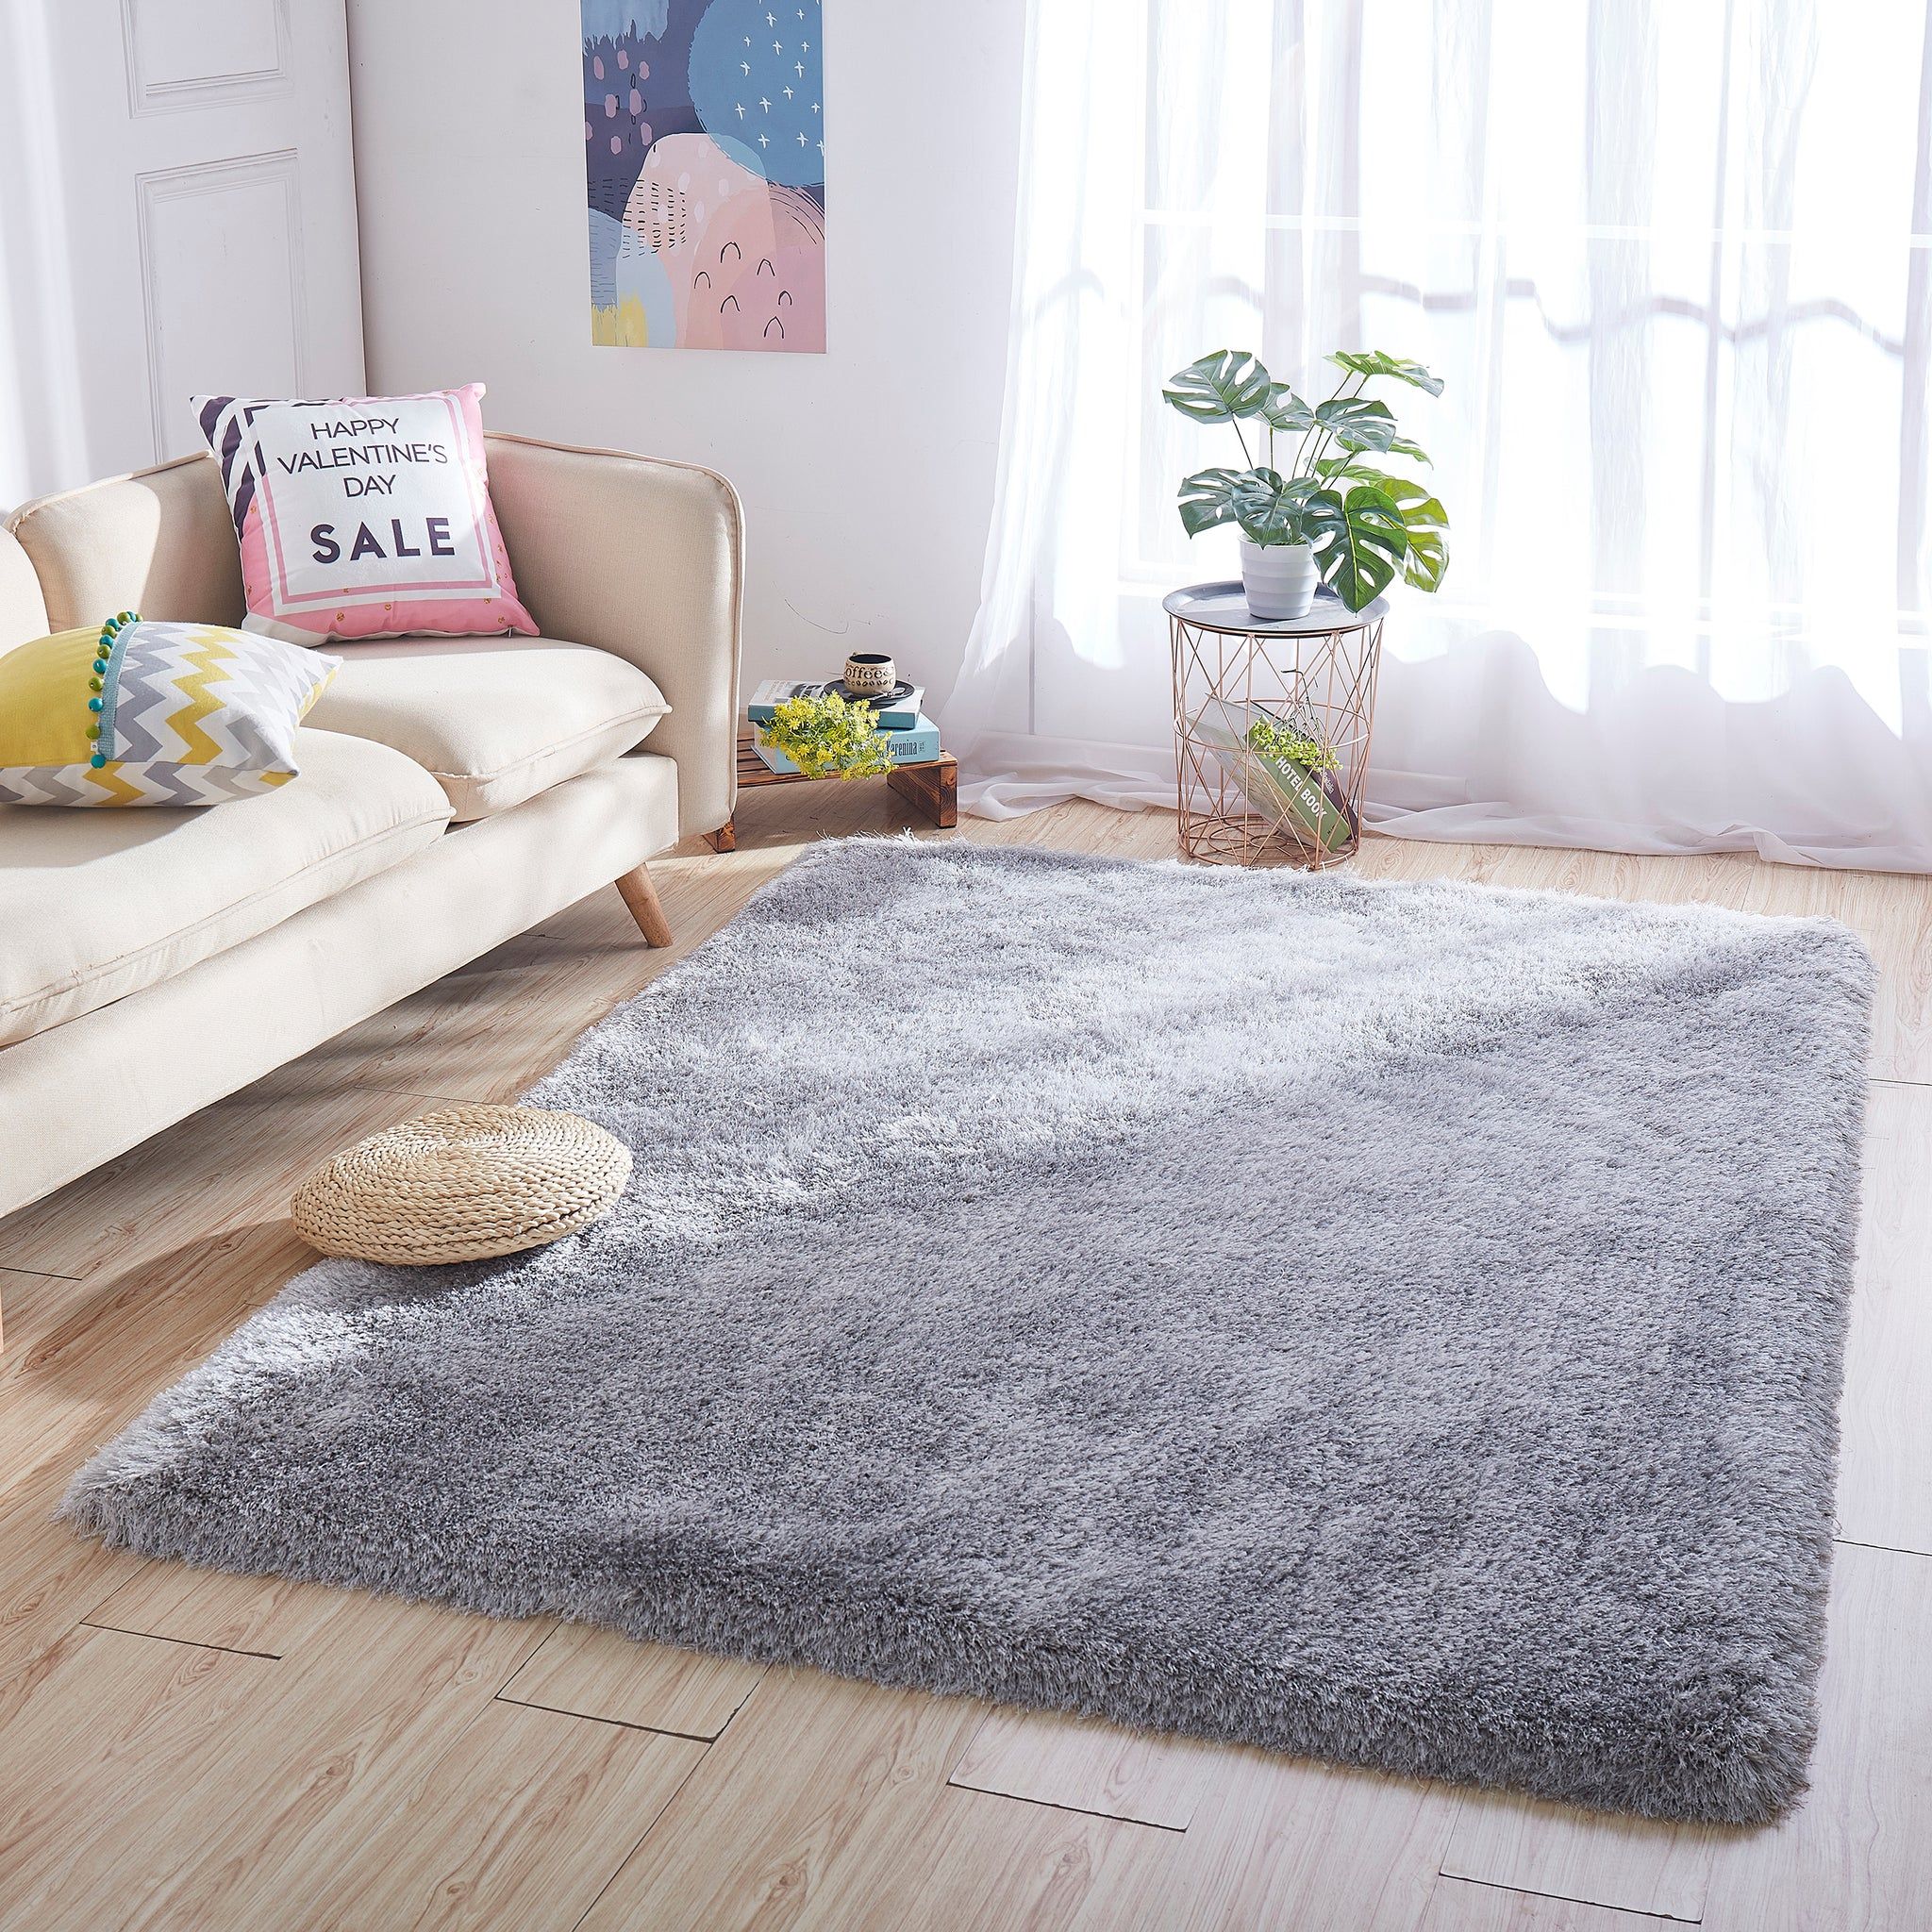 8' x 10' Silver Thick Dense Pile Super Soft Living Room Bedroom Shaggy Shag Area Rug